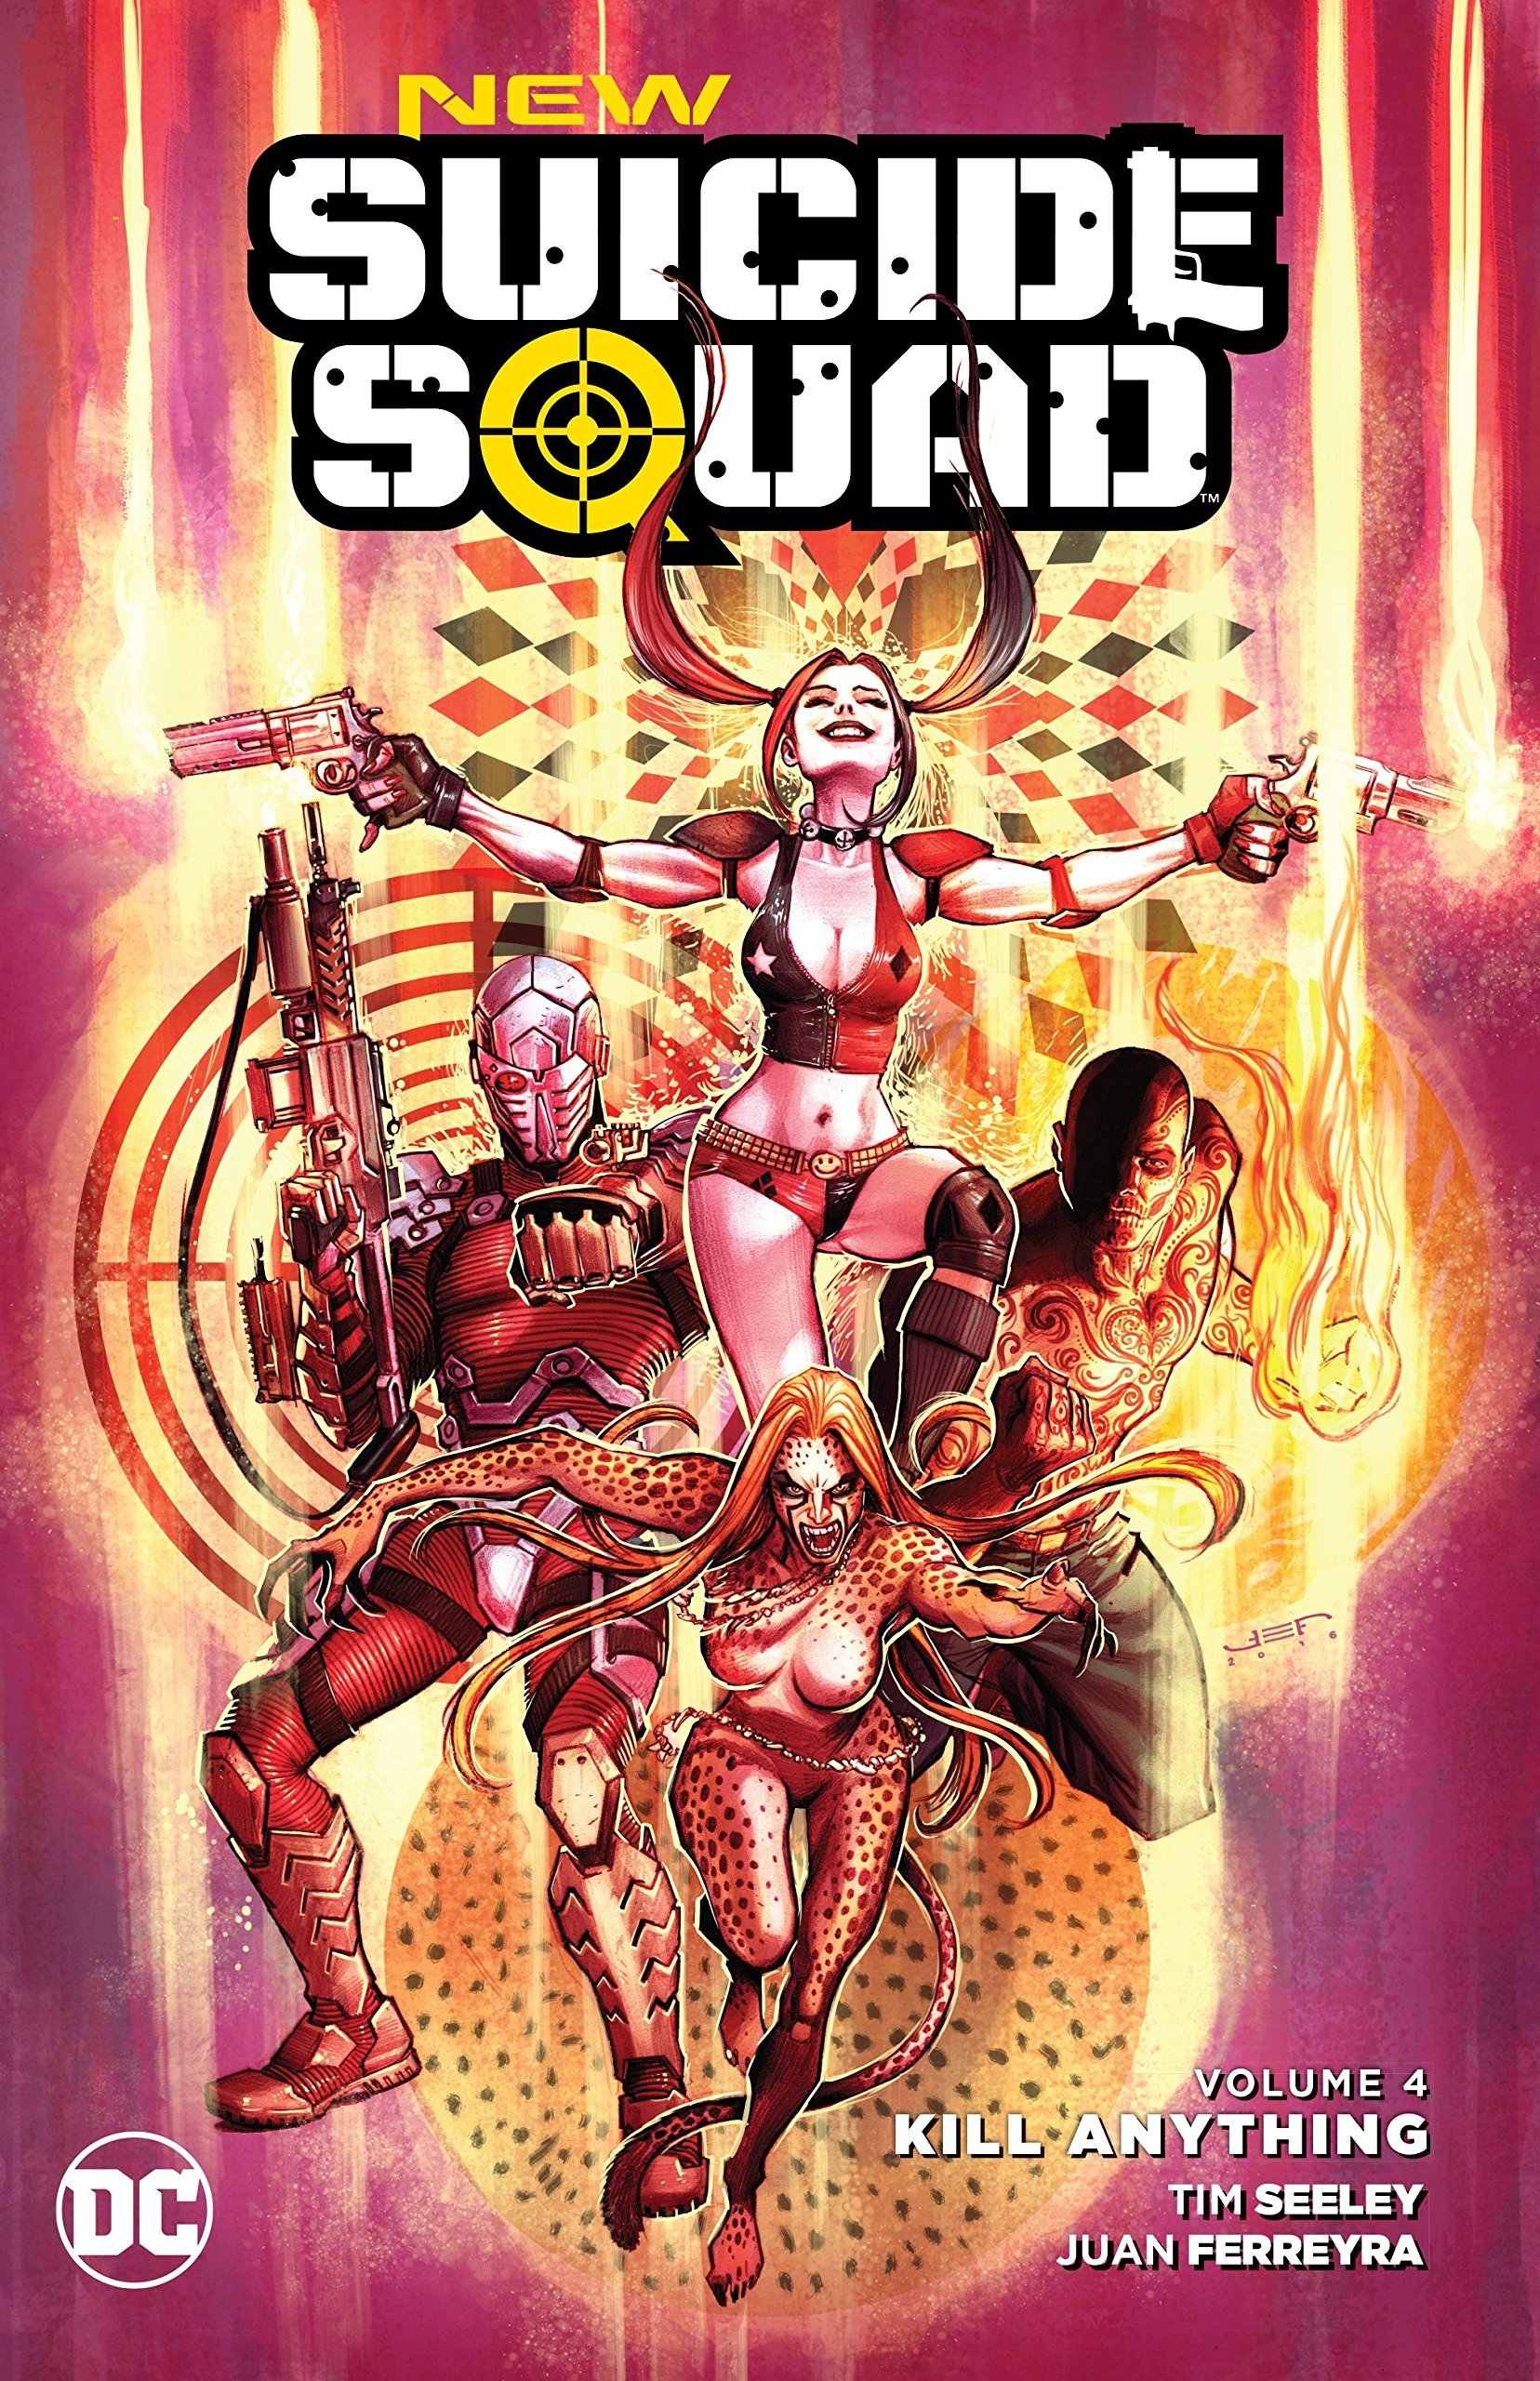 New Suicide Squad Vol. 4: Kill Anything by imusti